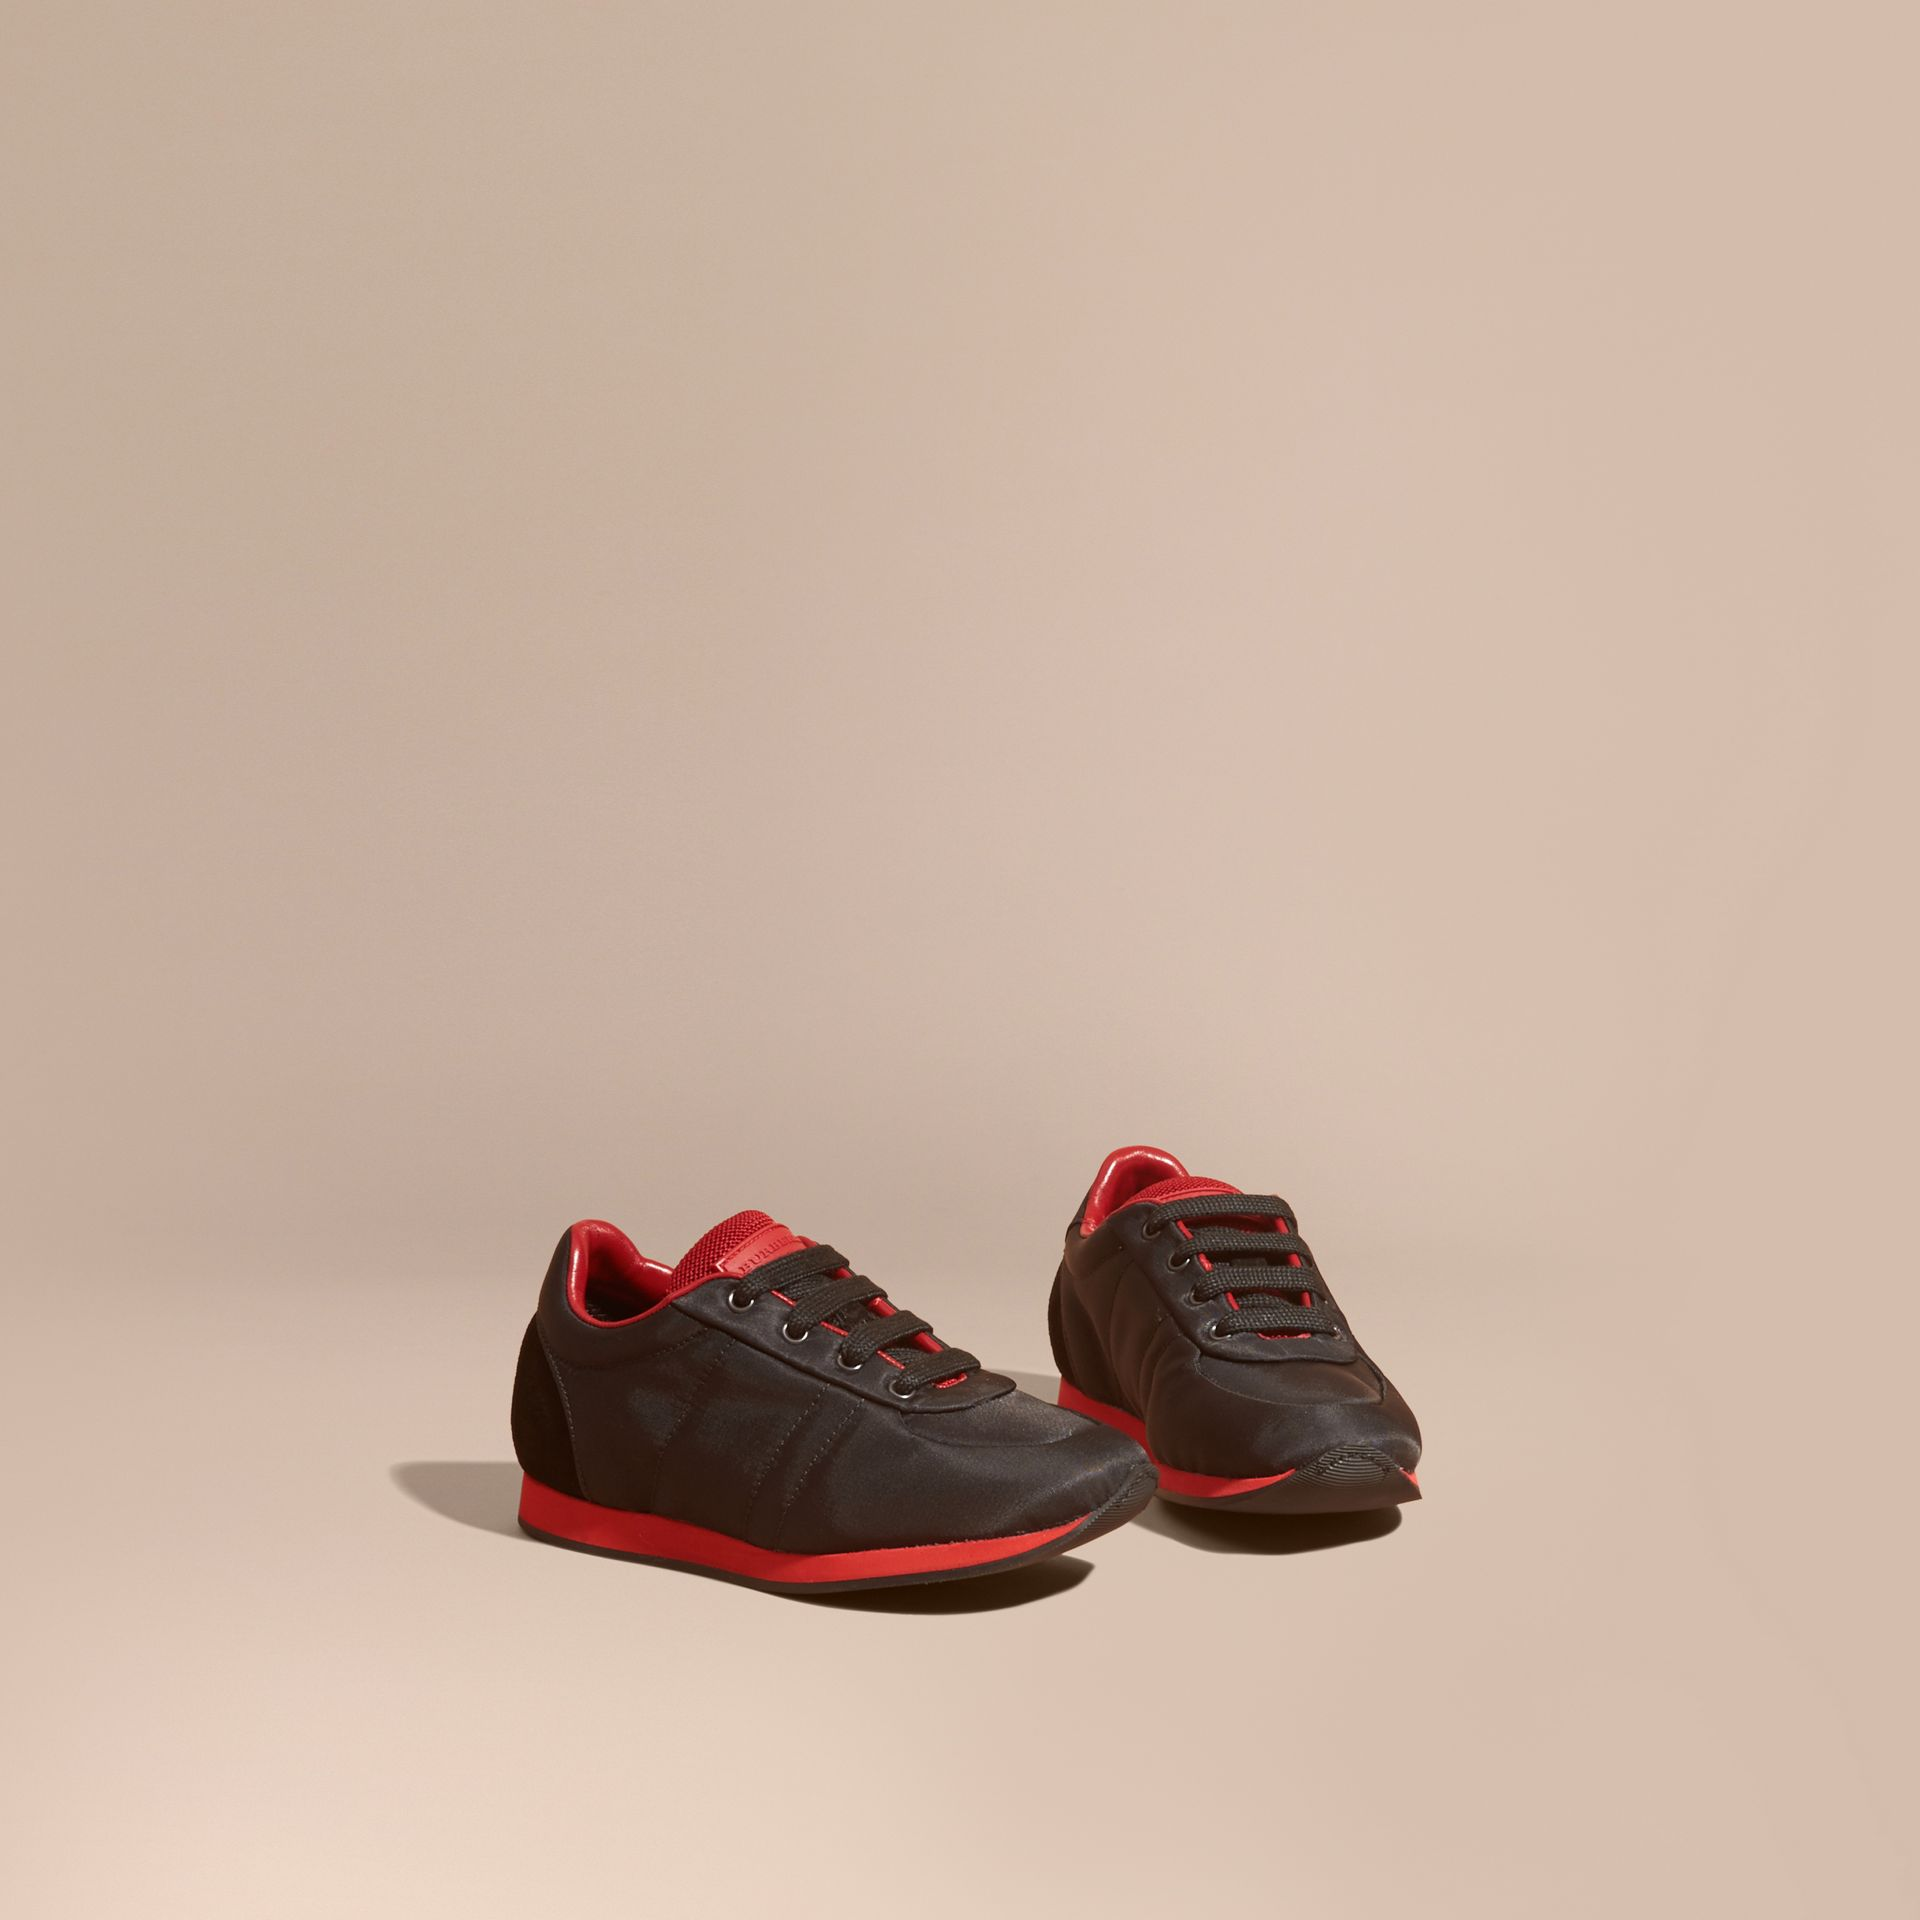 Black/military red Colour Block Satin and Leather Sneakers Black/military Red - gallery image 1